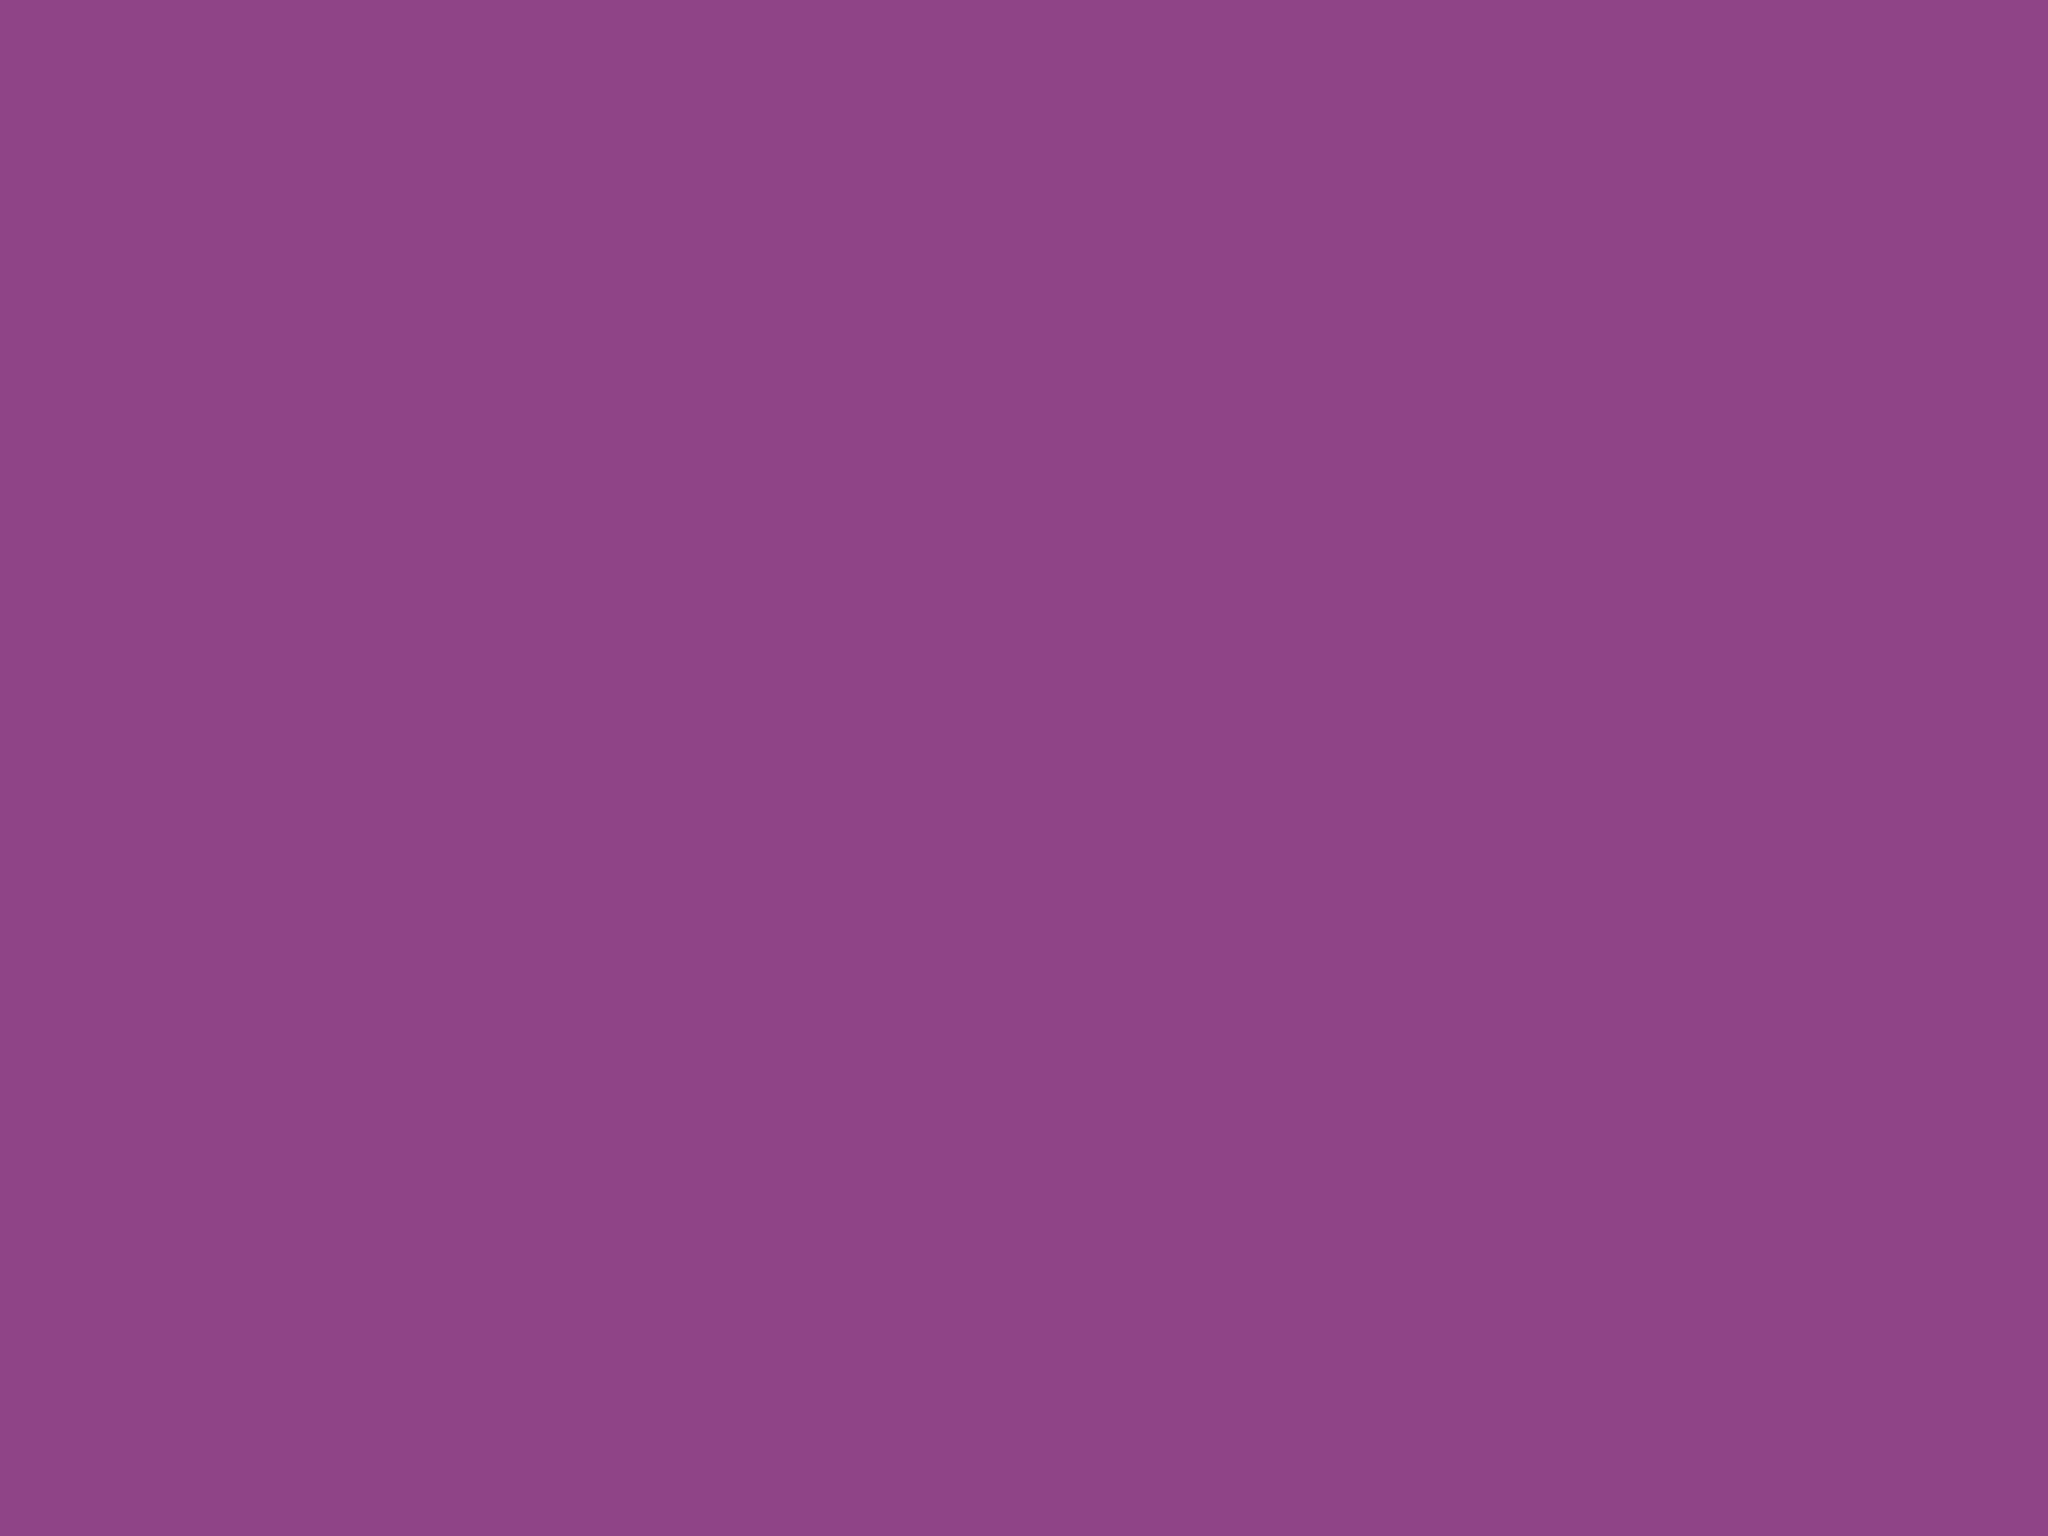 2048x1536 Plum Traditional Solid Color Background